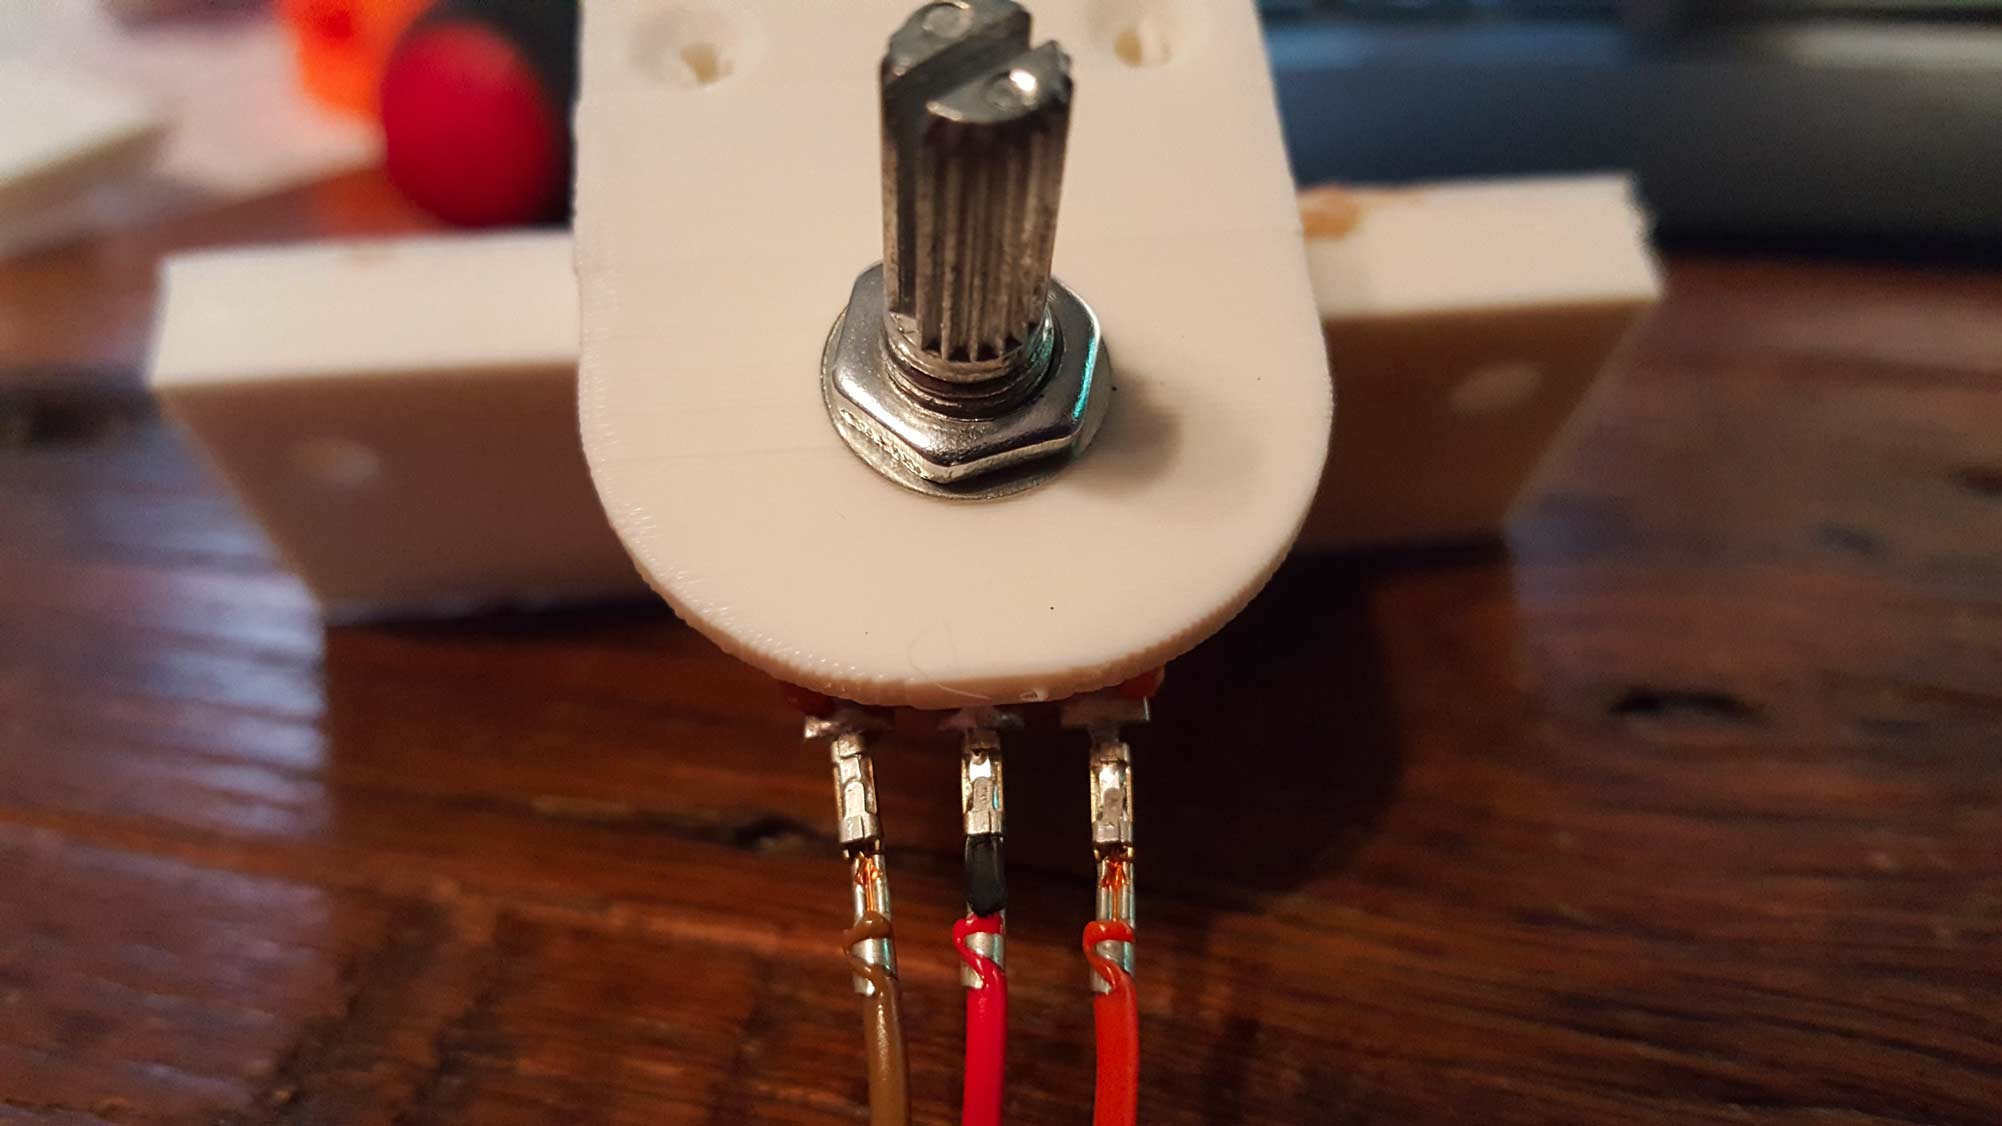 There you have it folks, the first official piece of wiring for BB-8.